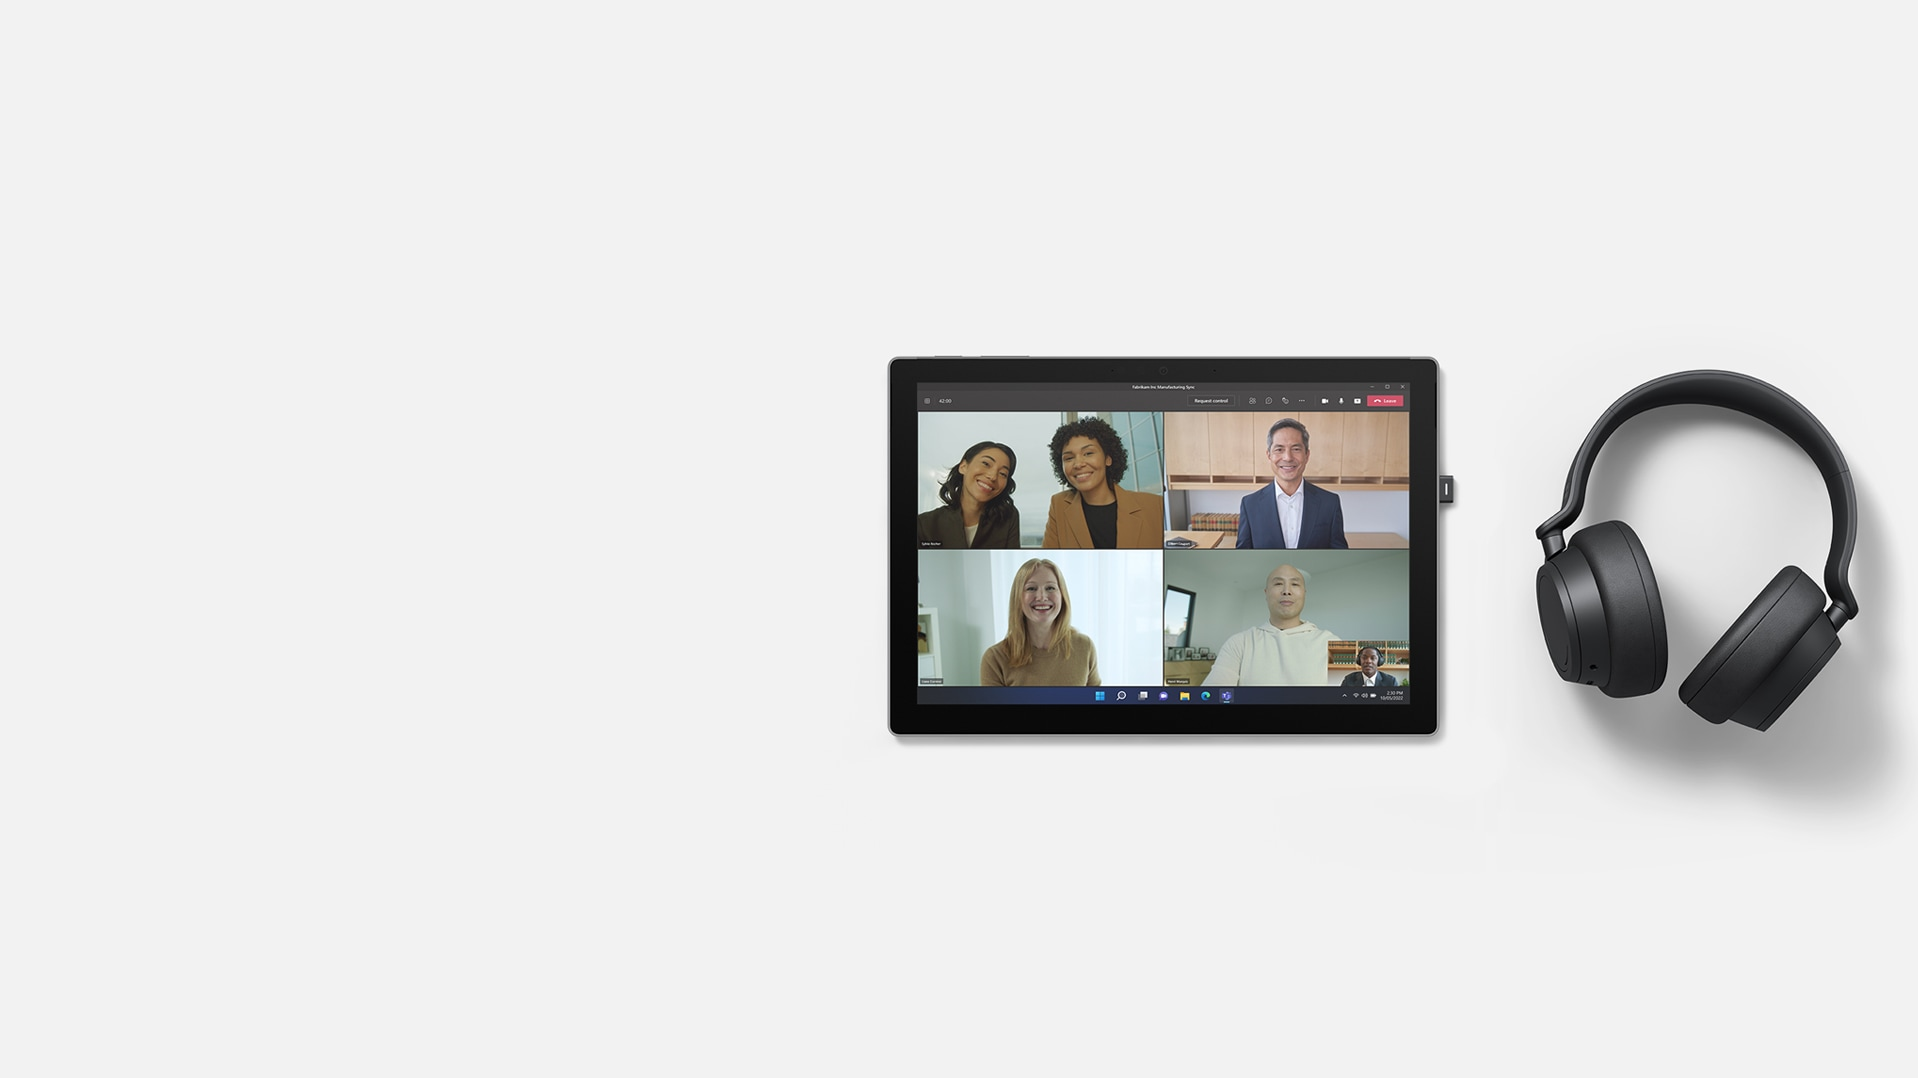 Together Mode in Microsoft Teams on a Surface Pro 7+ with Surface Headphones 2+ placed on the right side